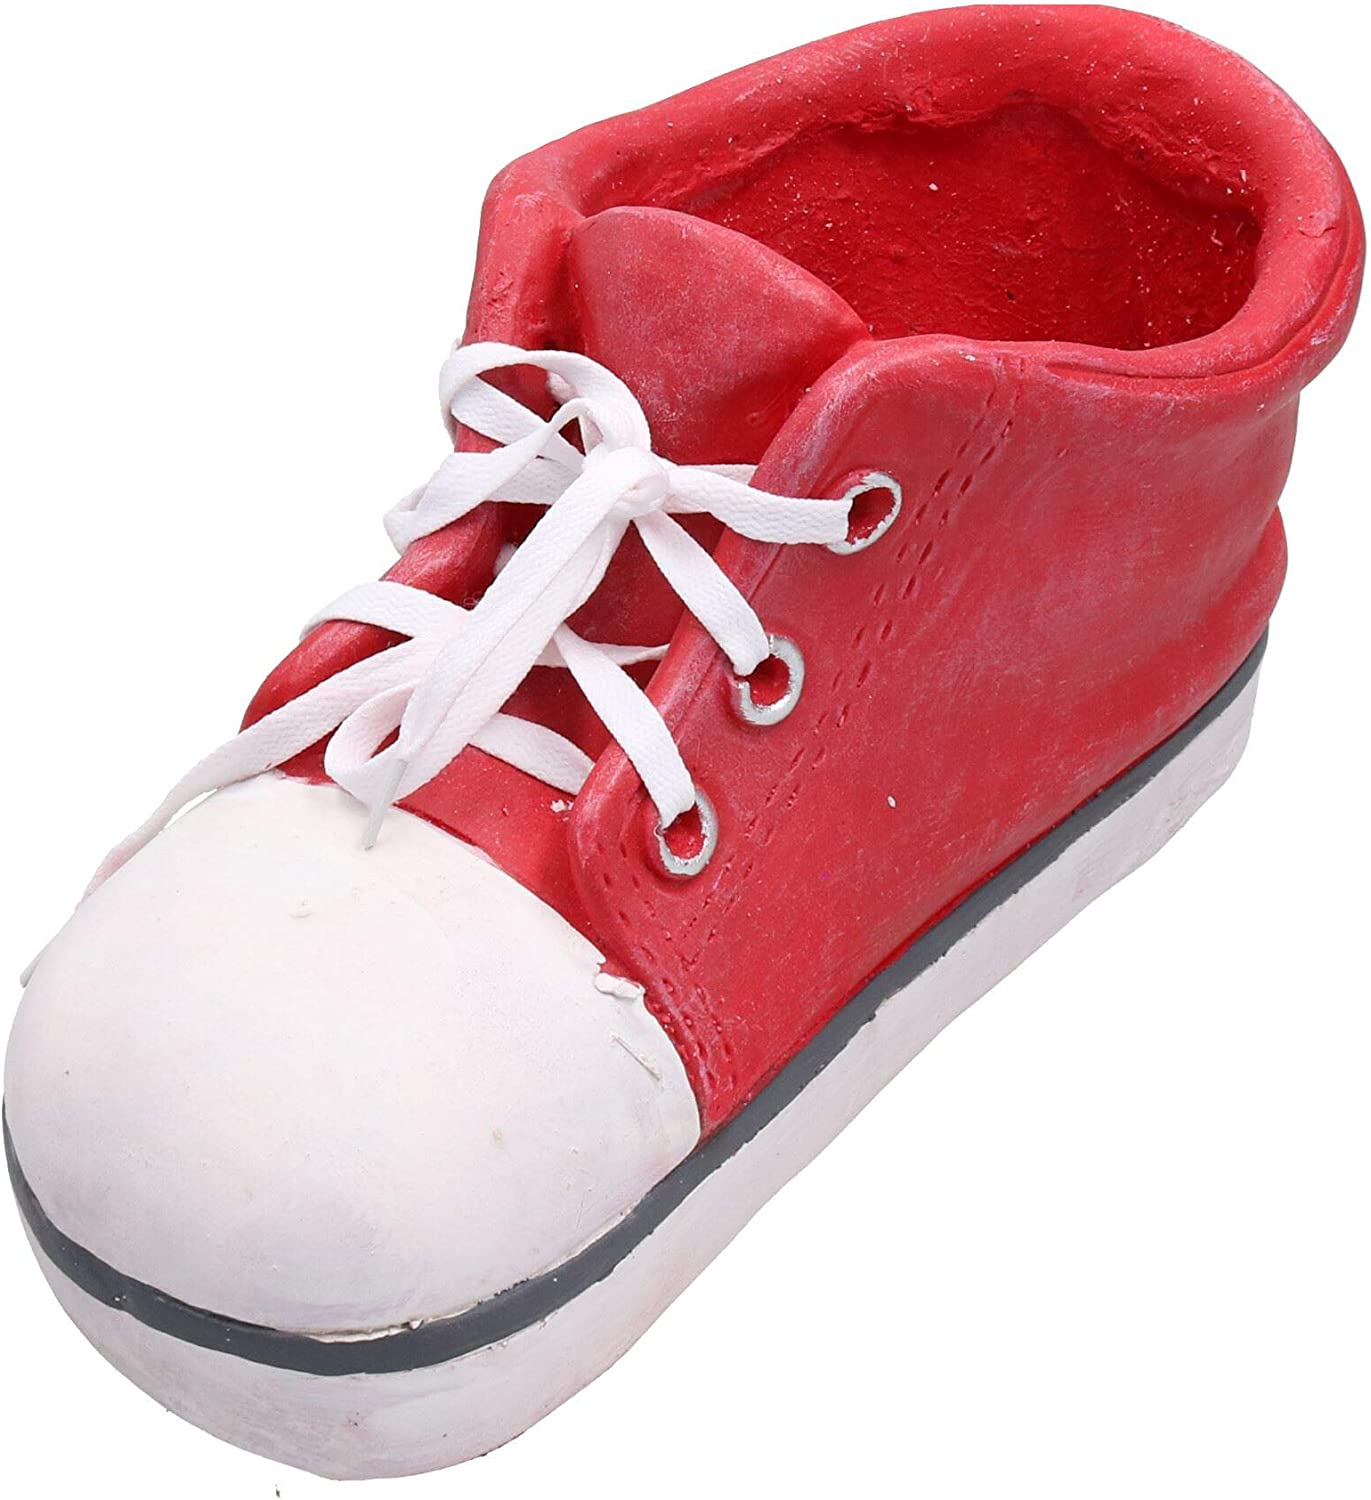 AB Tools Large Red Frost Proof Polyresin Shoe Planter Garden Ornament 17x19x35cm